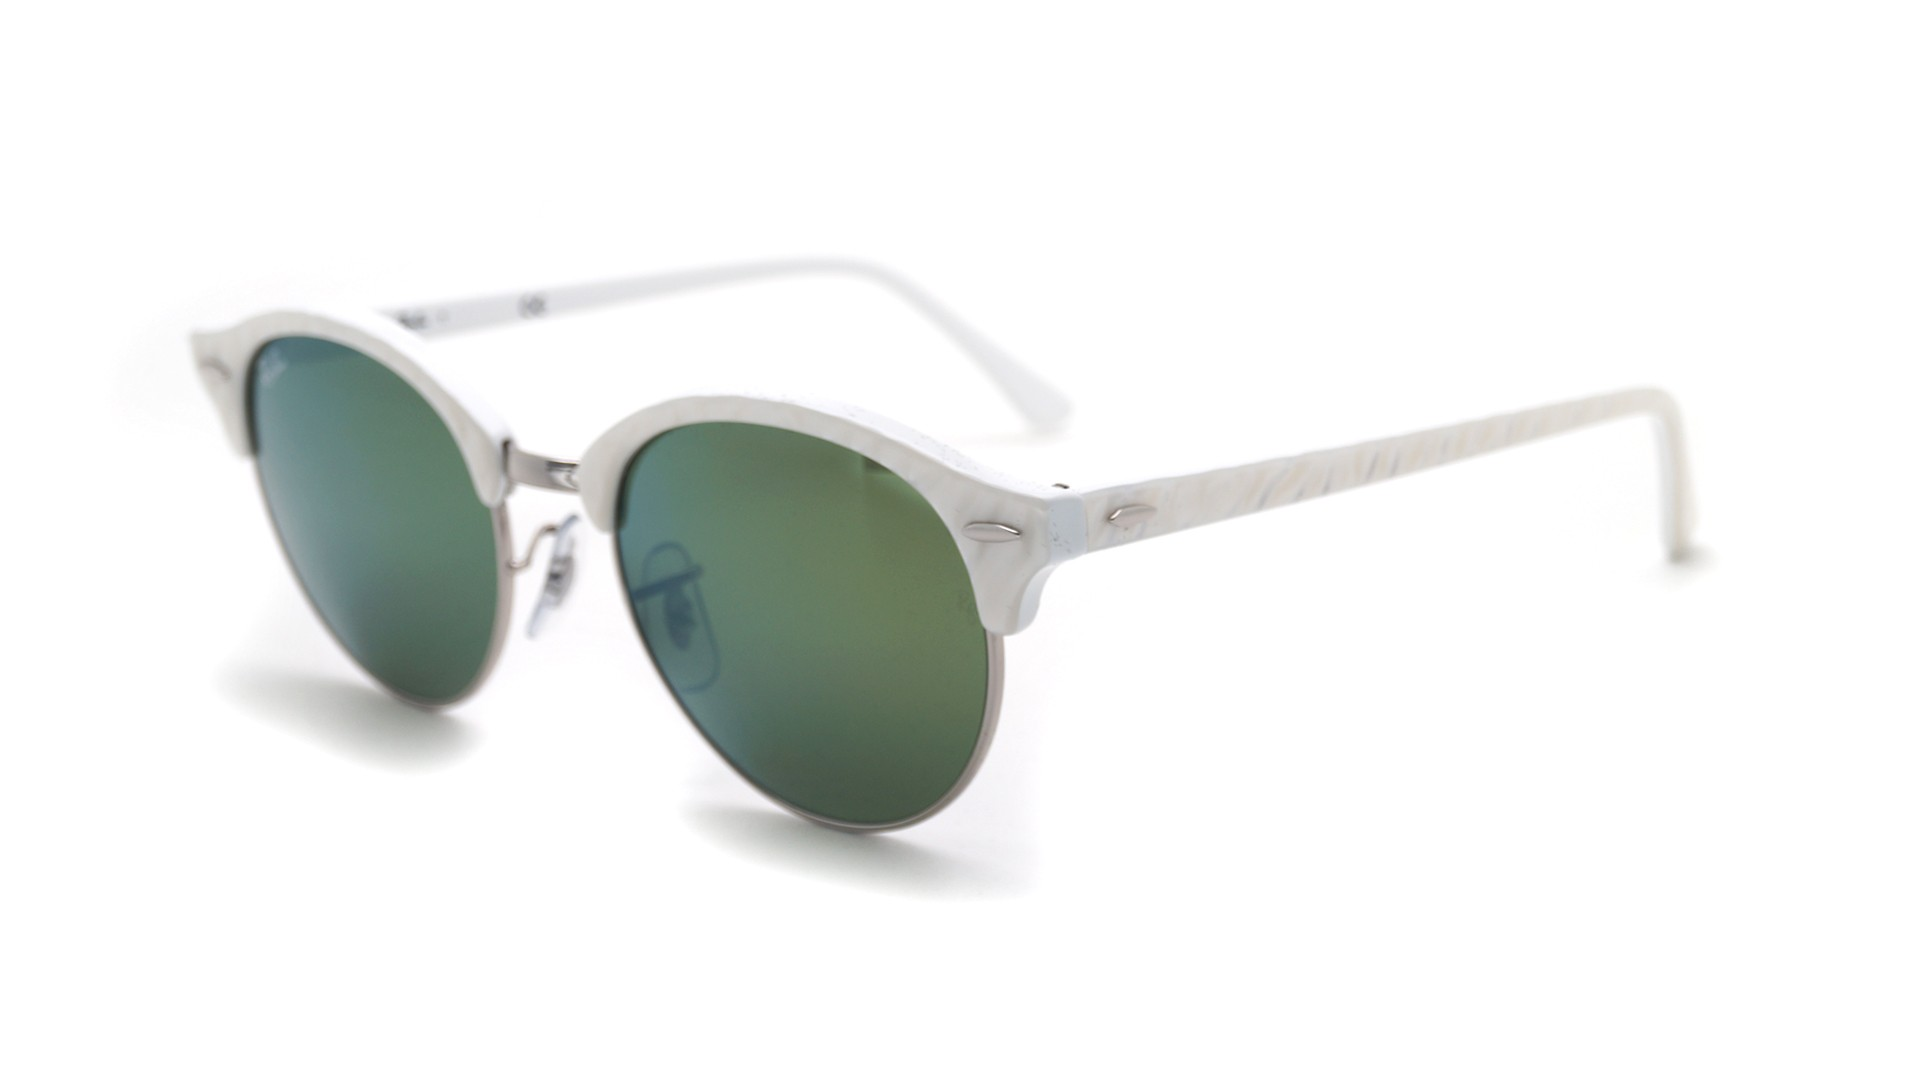 abc50695dc Sunglasses Ray-Ban Clubround White Flash Lenses RB4246 988 2X 51-19 Medium  Mirror